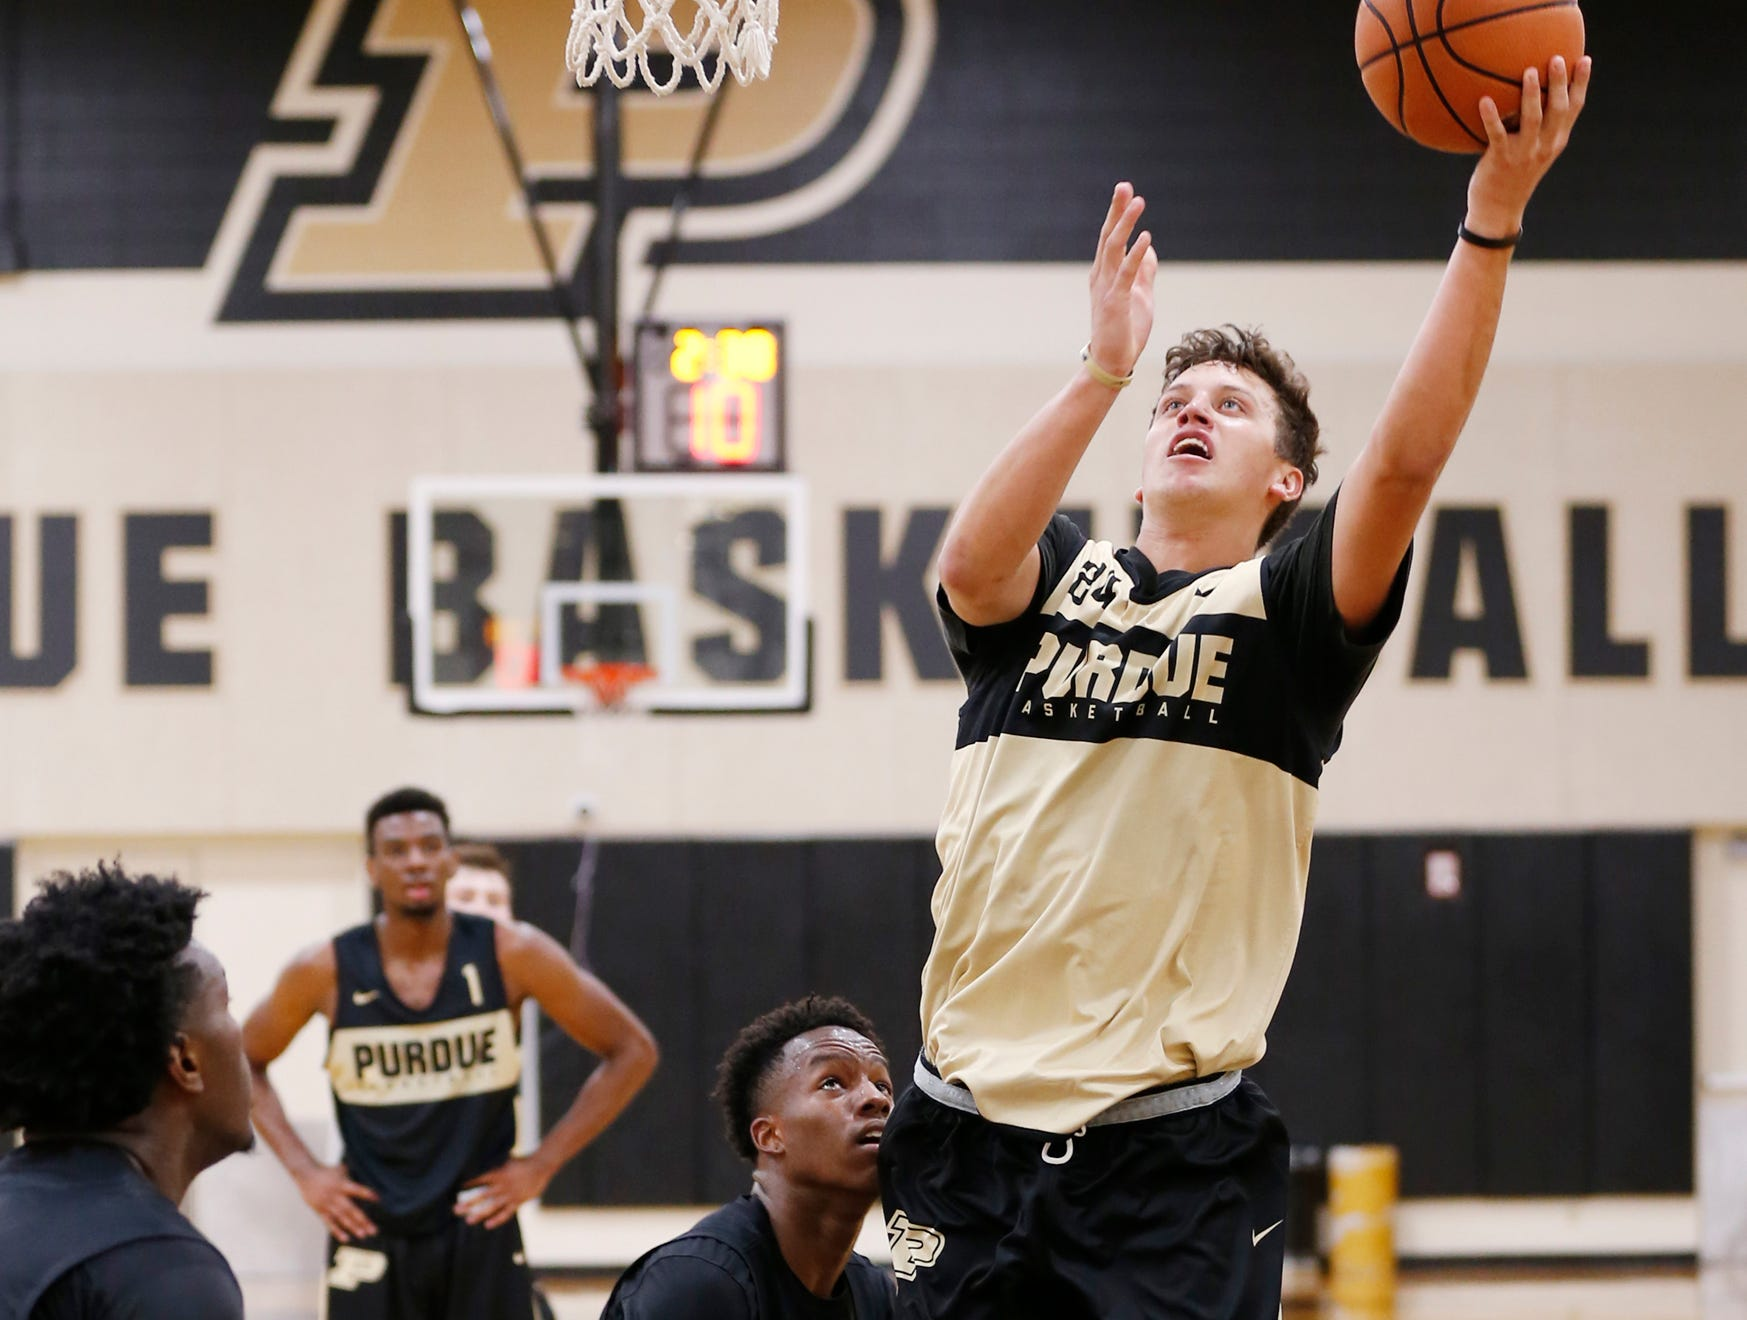 Grady Eifert drives to the basket for a shot during the first official practice of the season for Purdue men's basketball Tuesday, September 25, 2018, at Cardinal Court in Mackey Arena.